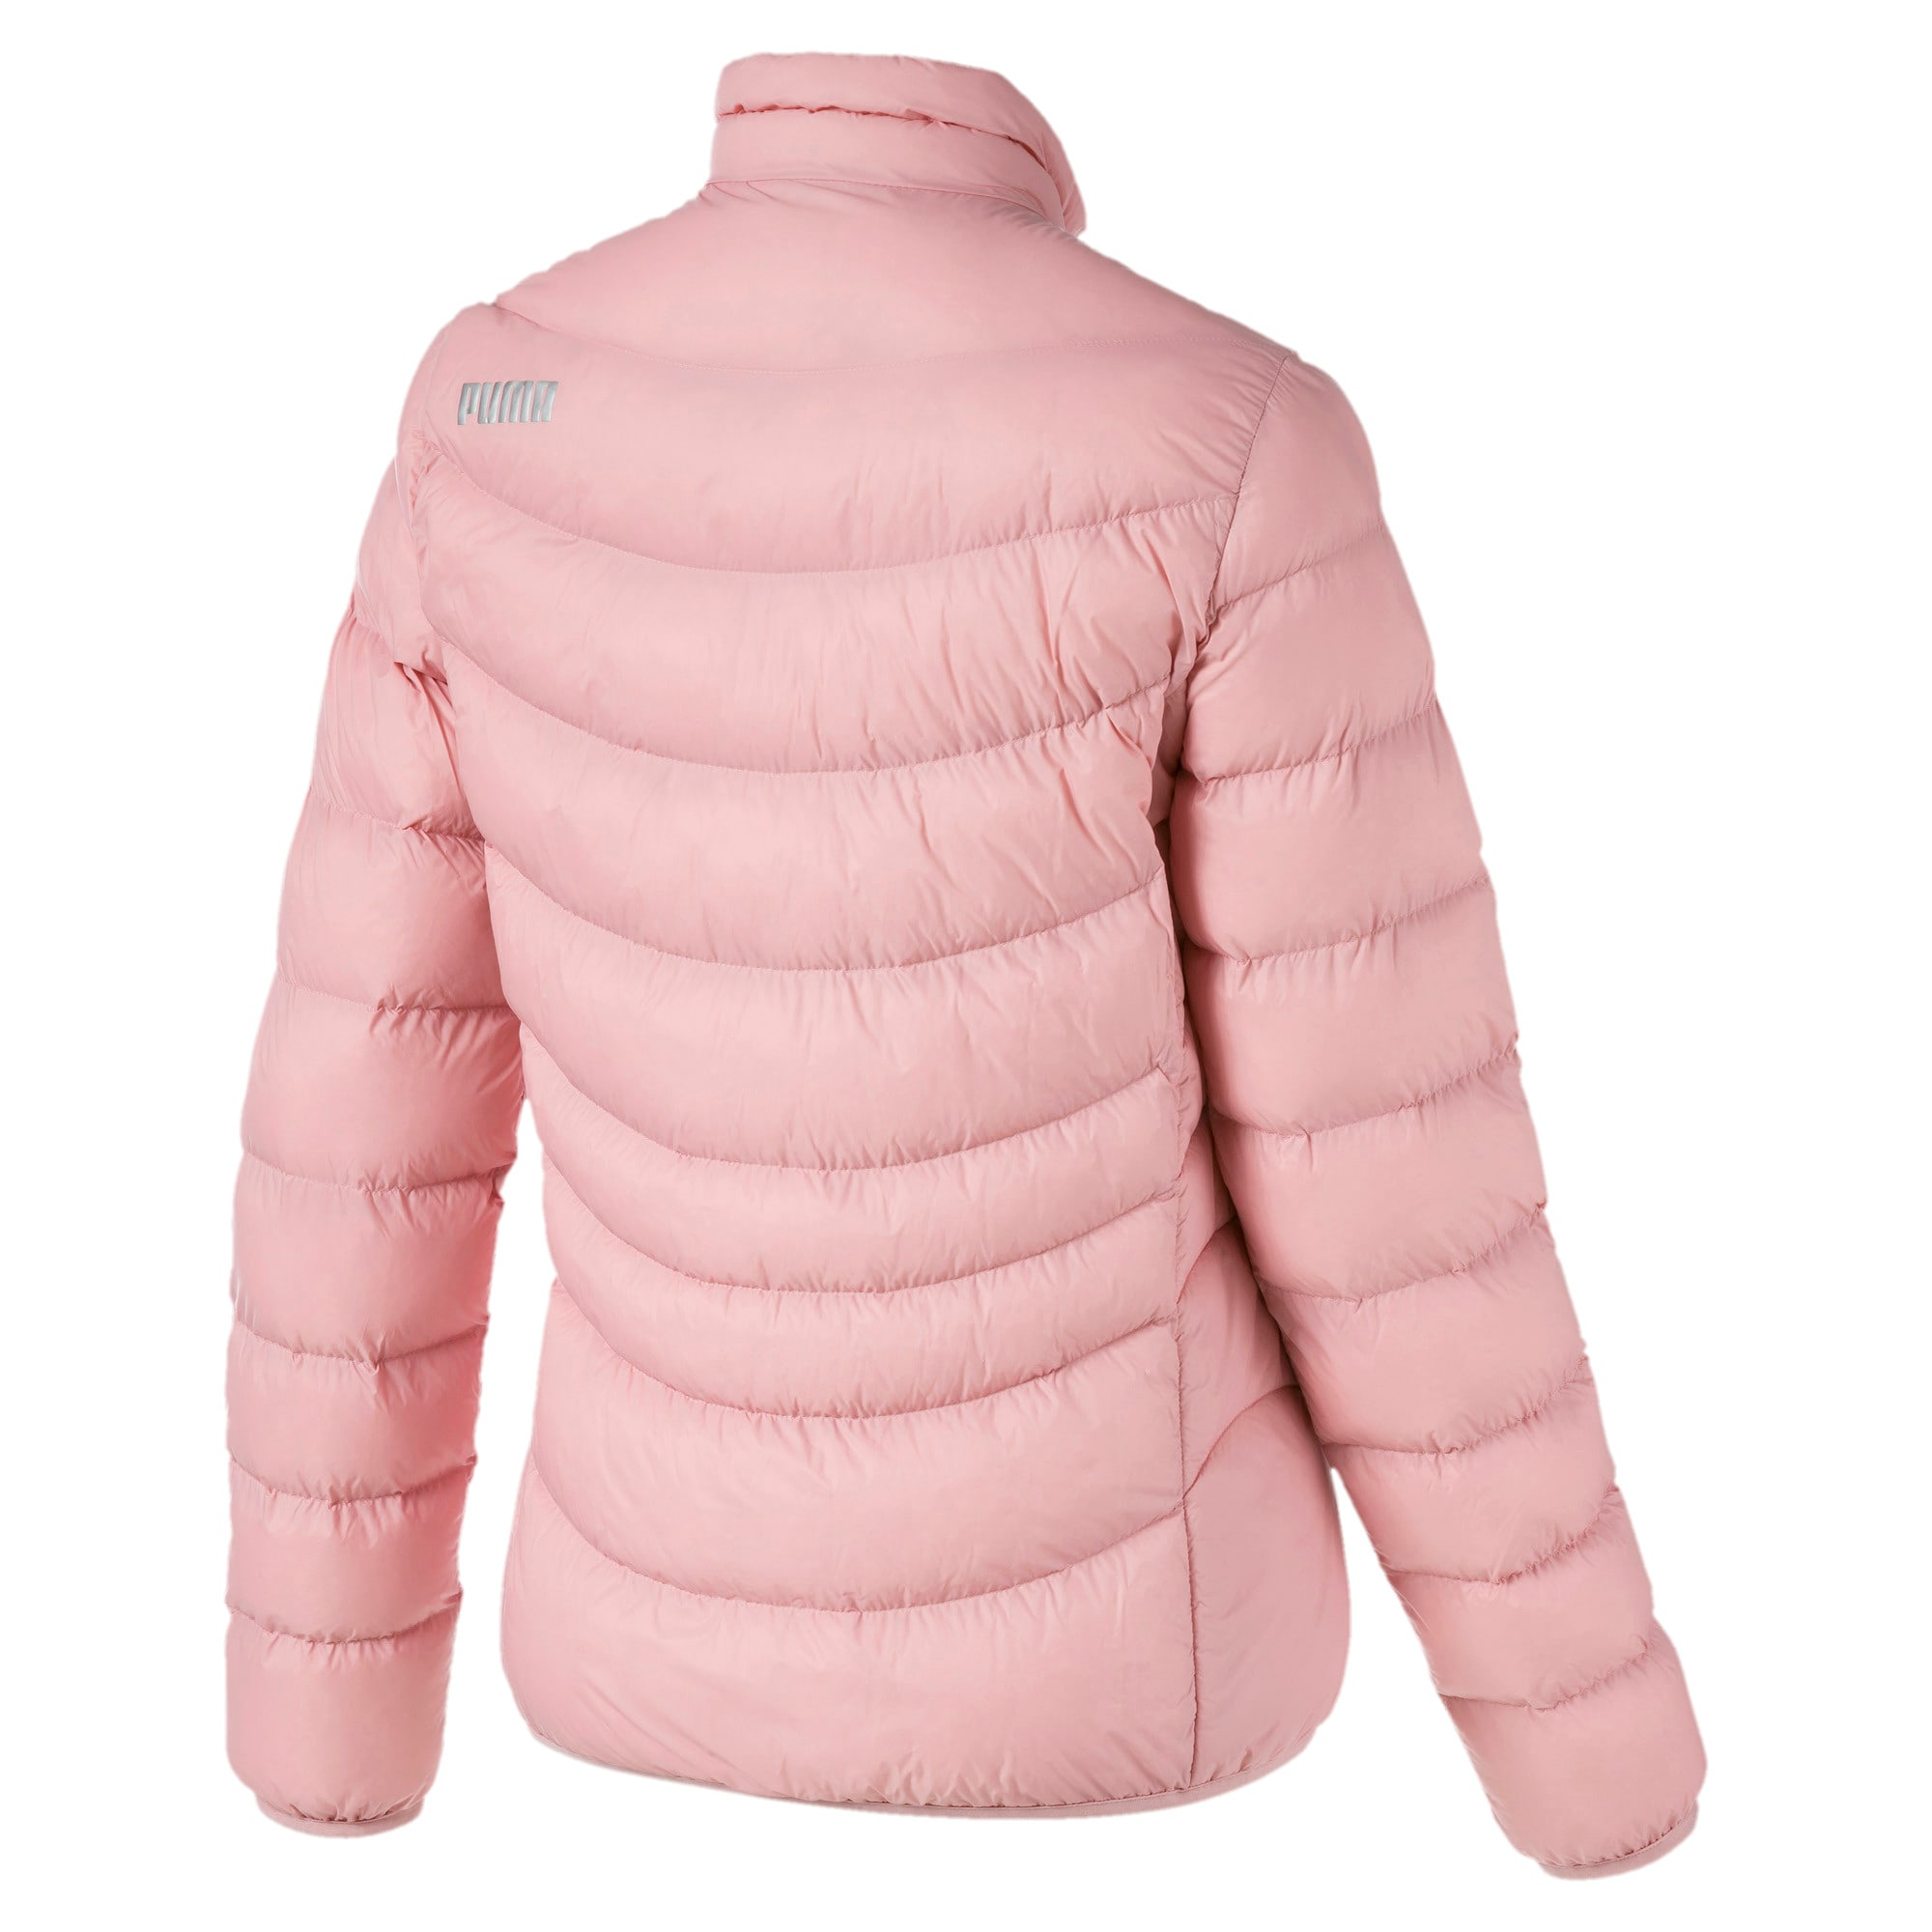 Thumbnail 5 of Ultralight warmCELL Women's Jacket, Bridal Rose, medium